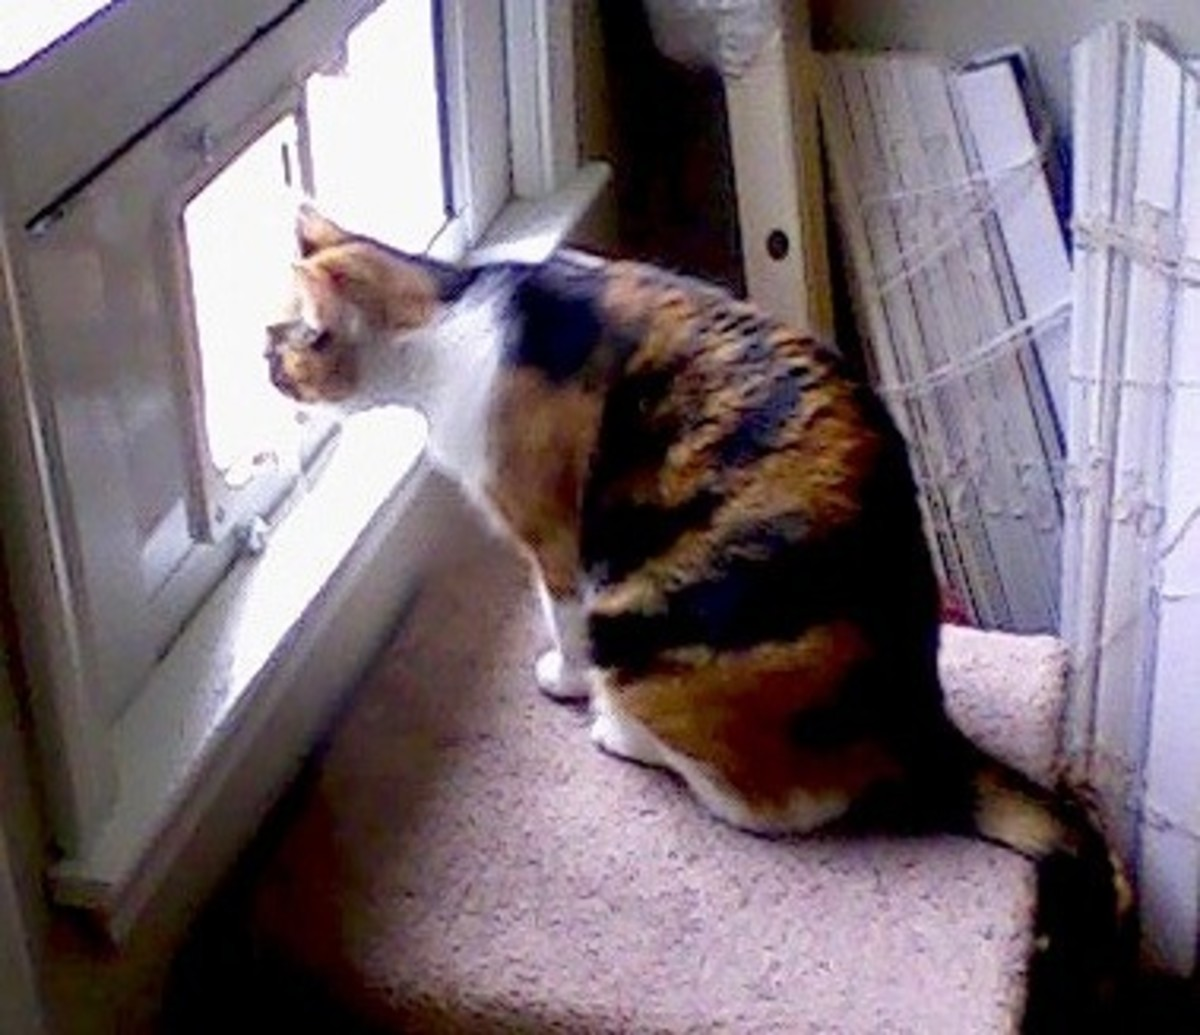 She's leaning toward the outdoors...